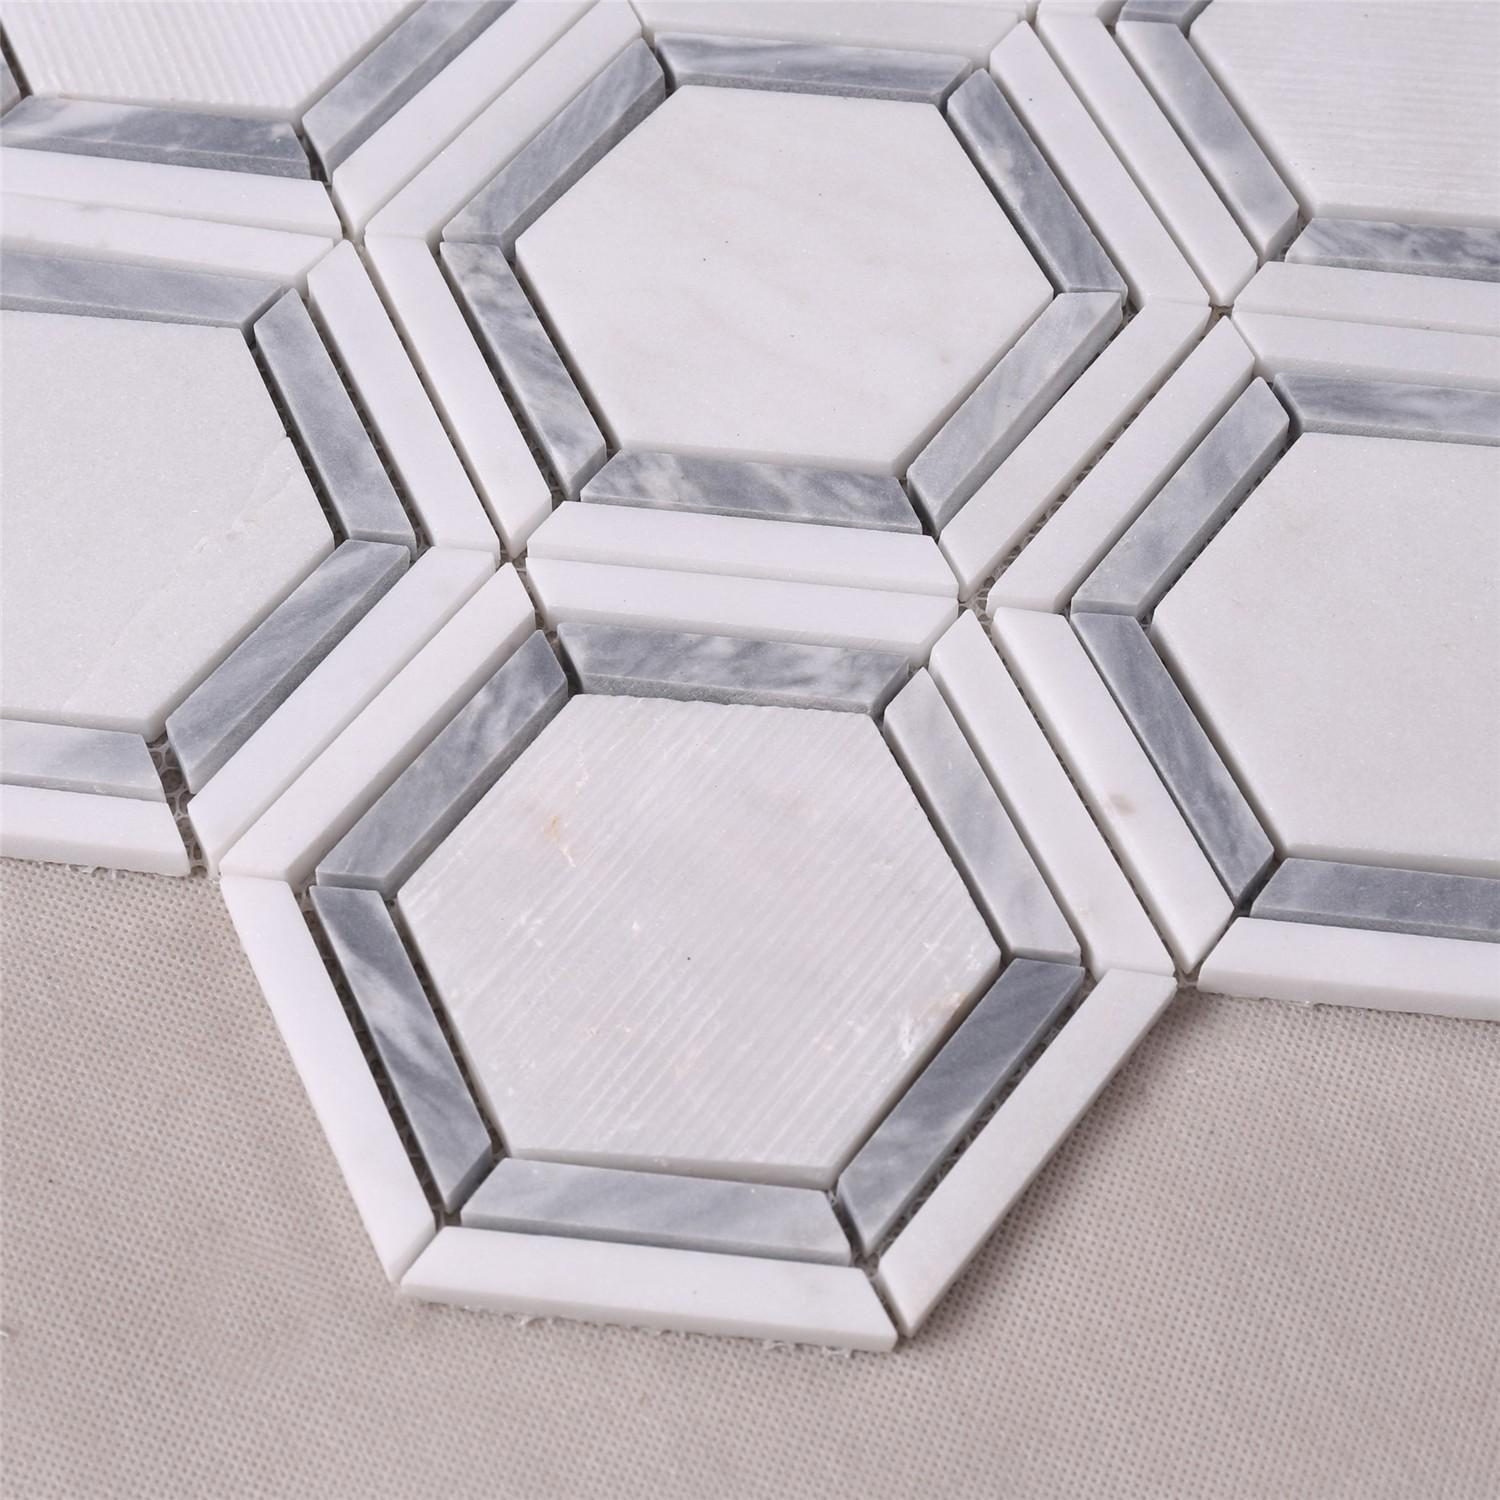 product-hexagon marble mosaic mosaic tile marble mosaic tile-Heng Xing-img